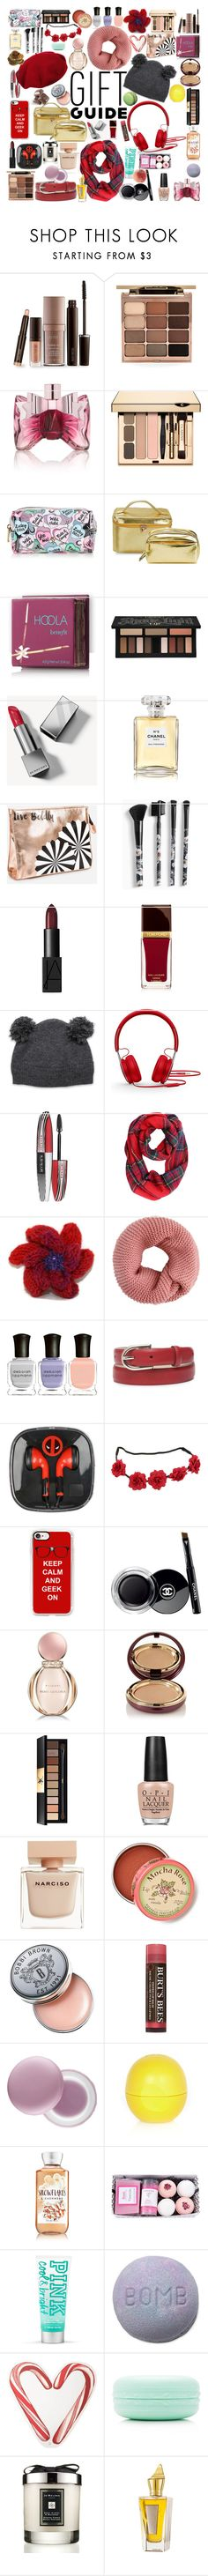 """Everything for a Bestie!"" by elliewriter ❤ liked on Polyvore featuring Laura Mercier, Stila, Viktor & Rolf, Hoola, Kat Von D, Burberry, Chanel, Ashley Stewart, Torrid and NARS Cosmetics"